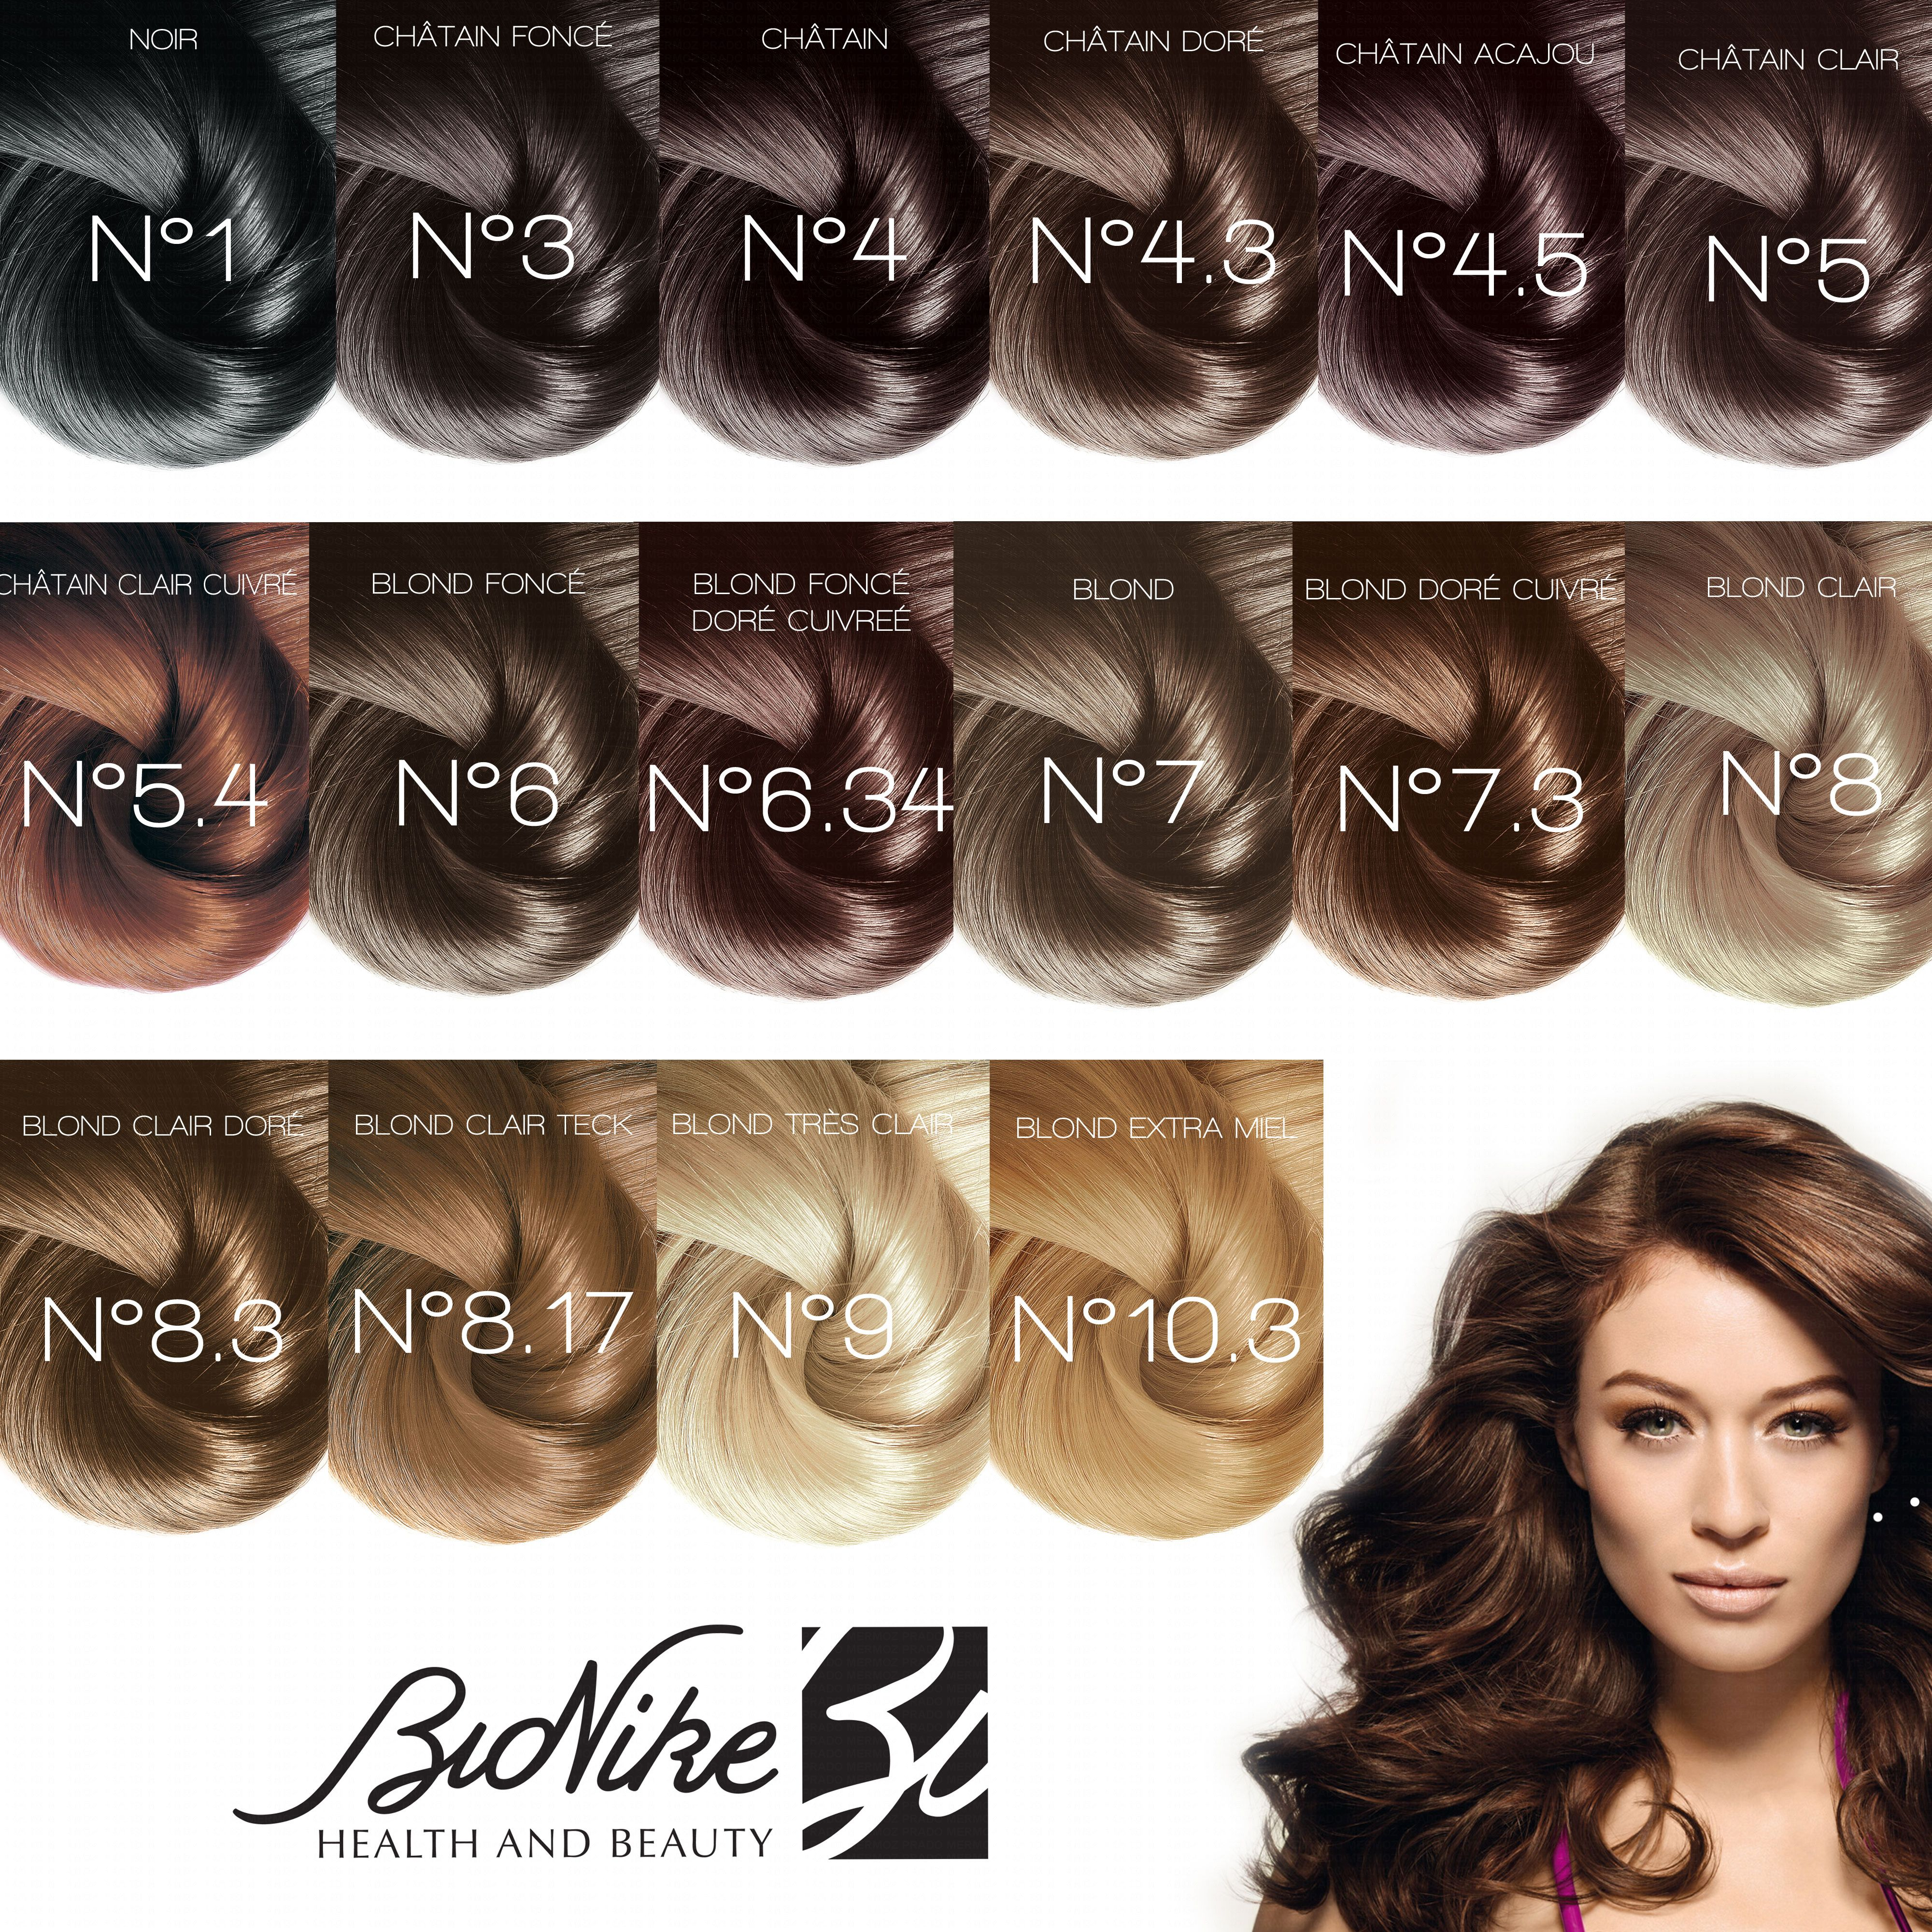 bionike shine on chtain clair cuivr 54 1 crme colorante 50ml 1 rvlateur 75ml - Coloration Chatain Cuivr